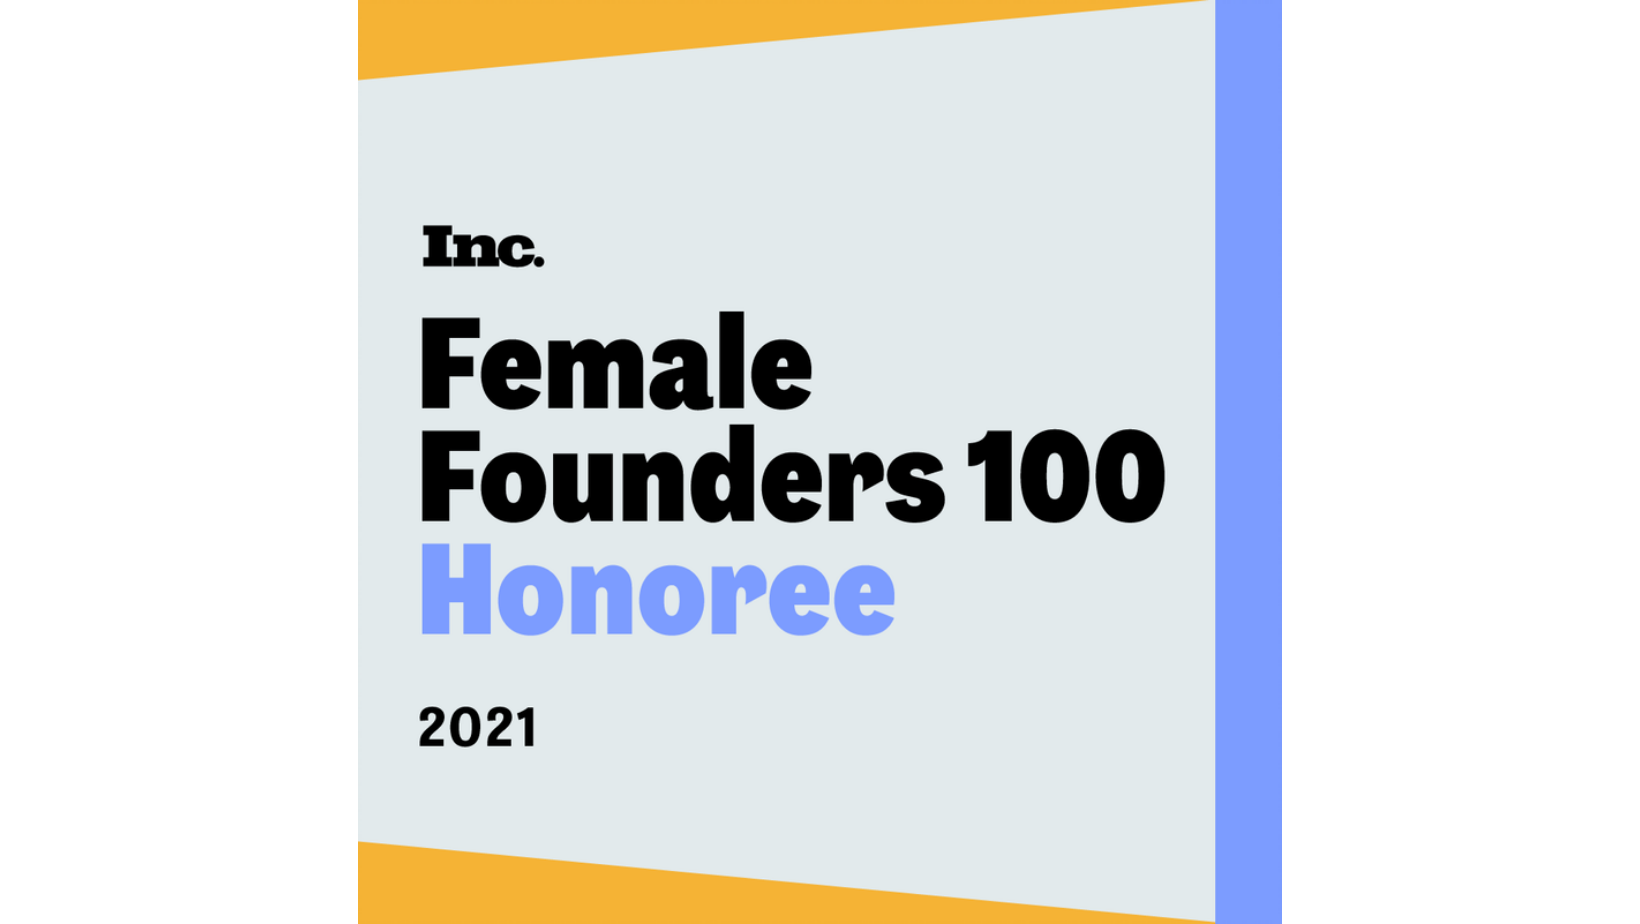 Megan Glover Named to Inc.'s 2021 Female Founders 100 List